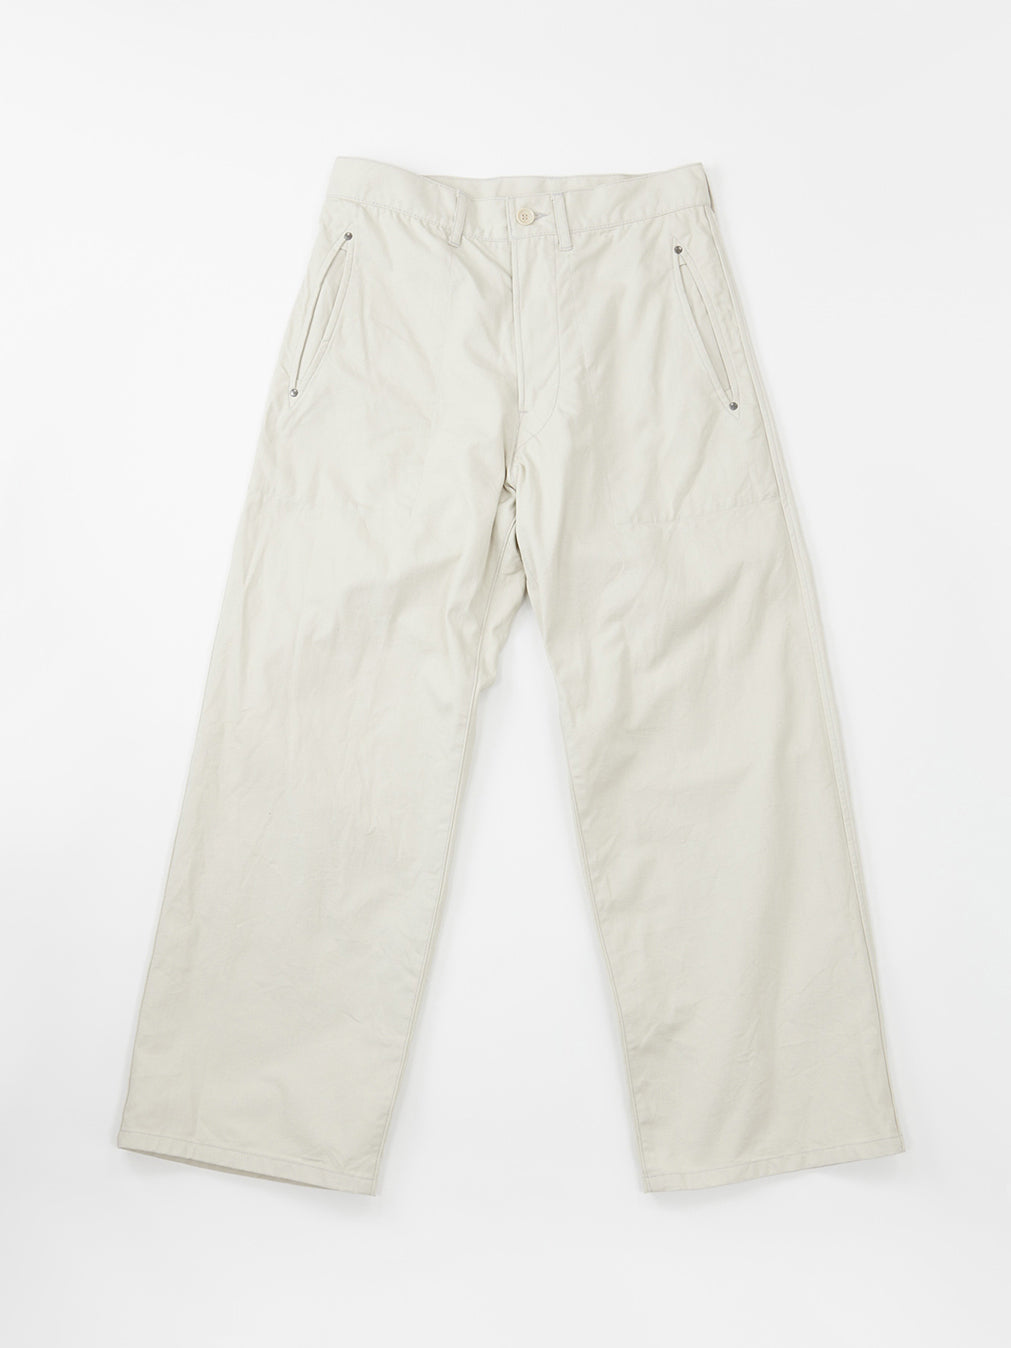 Okome Duck 908 Worker Pants in White